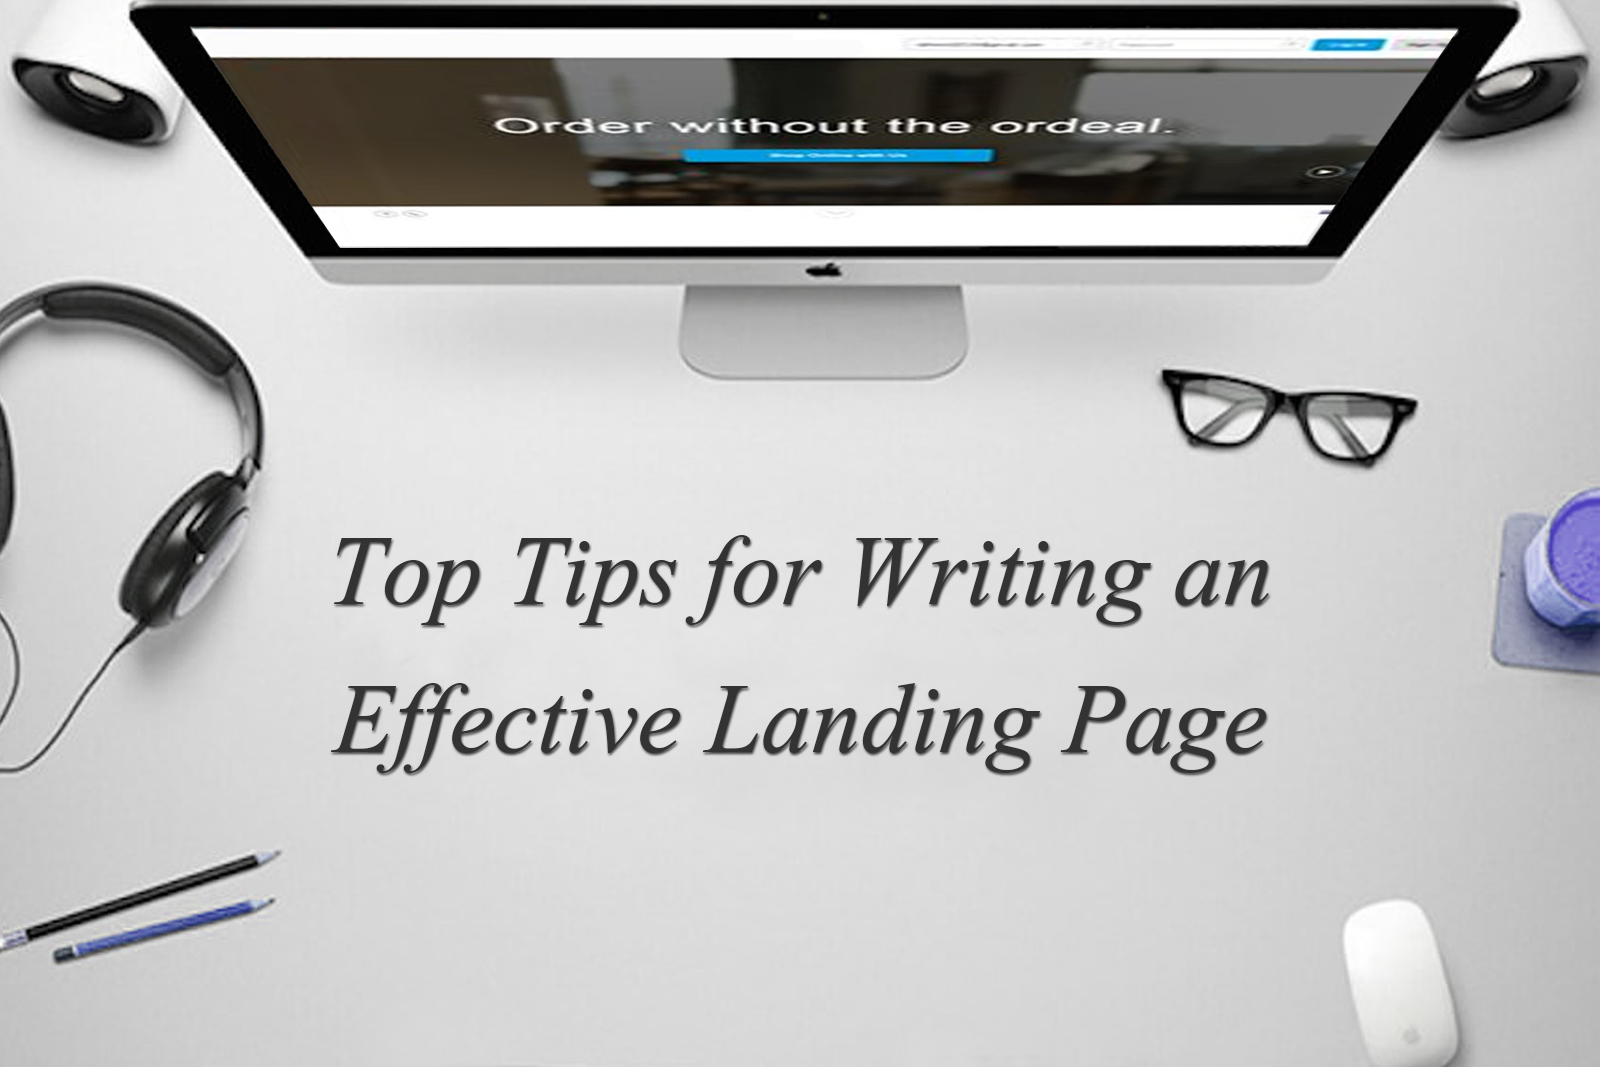 4 Must-Haves for Effective Landing Pages